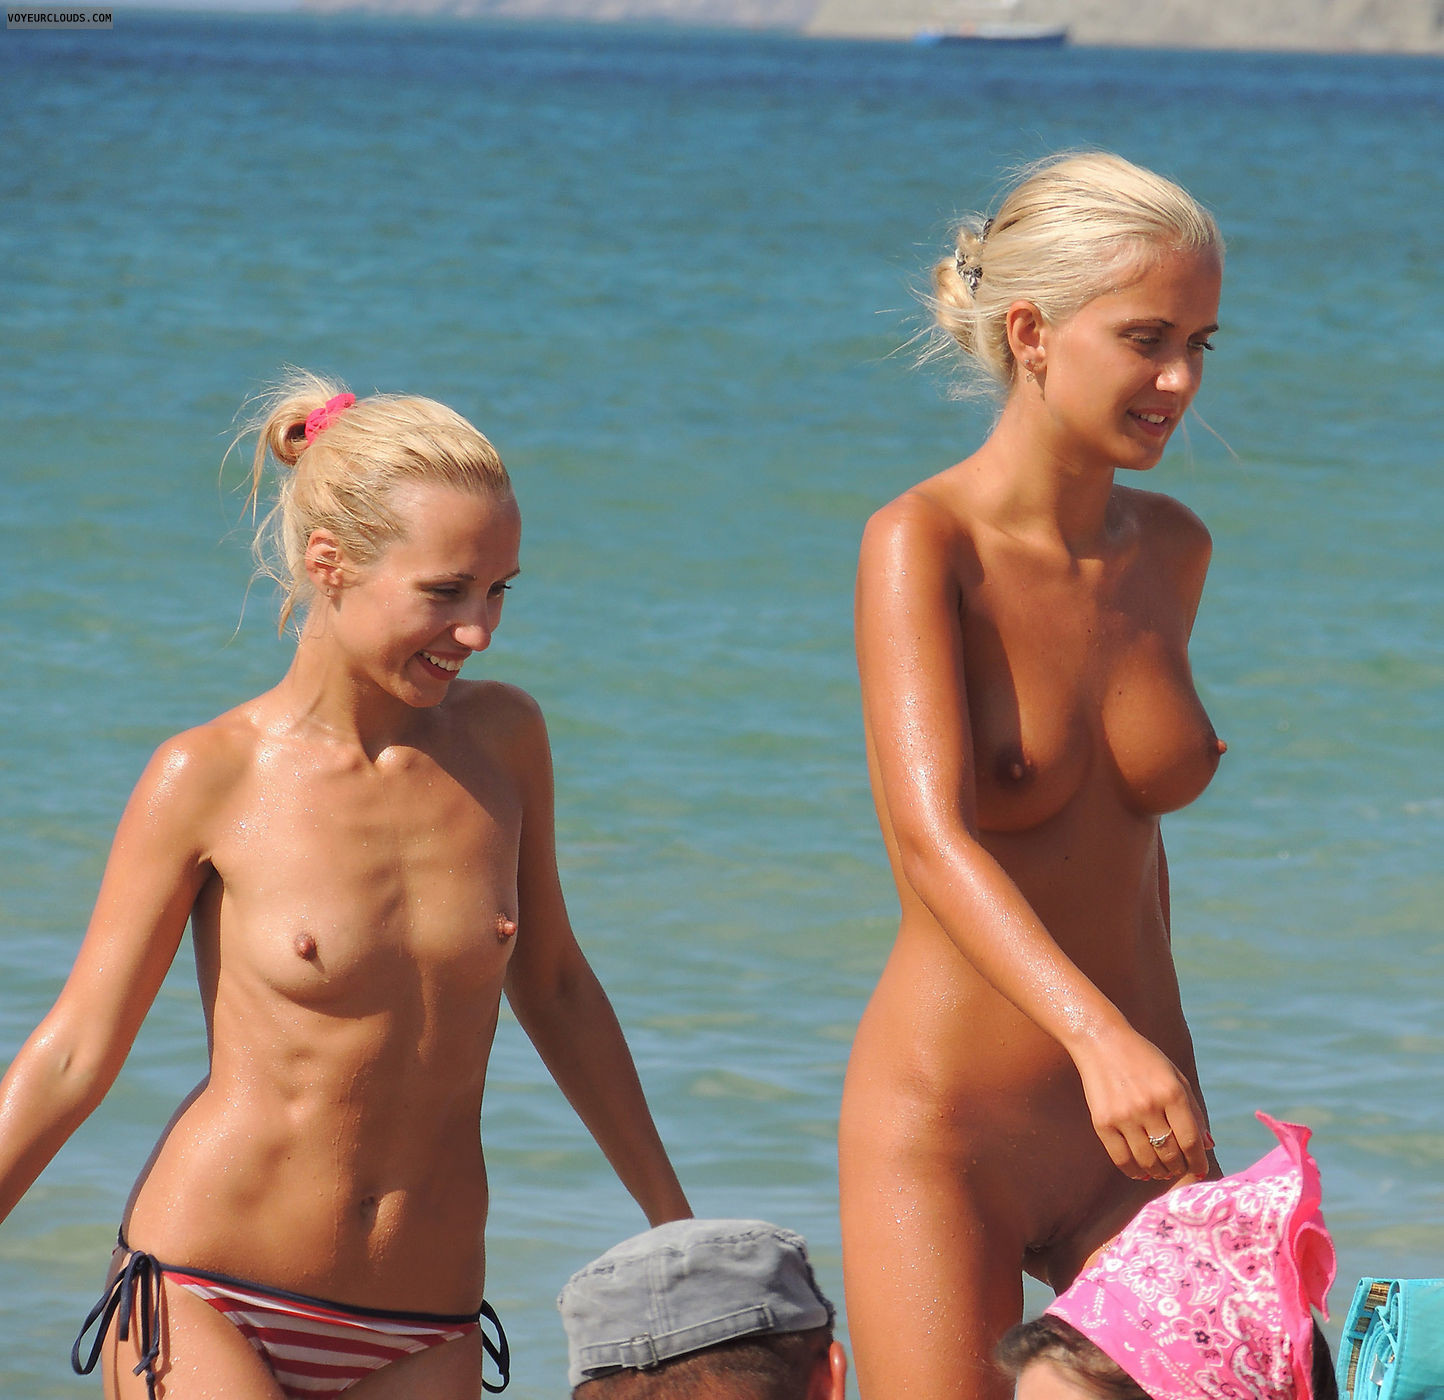 nudists-girls-boobs-beach-topless-mix-vol7-19